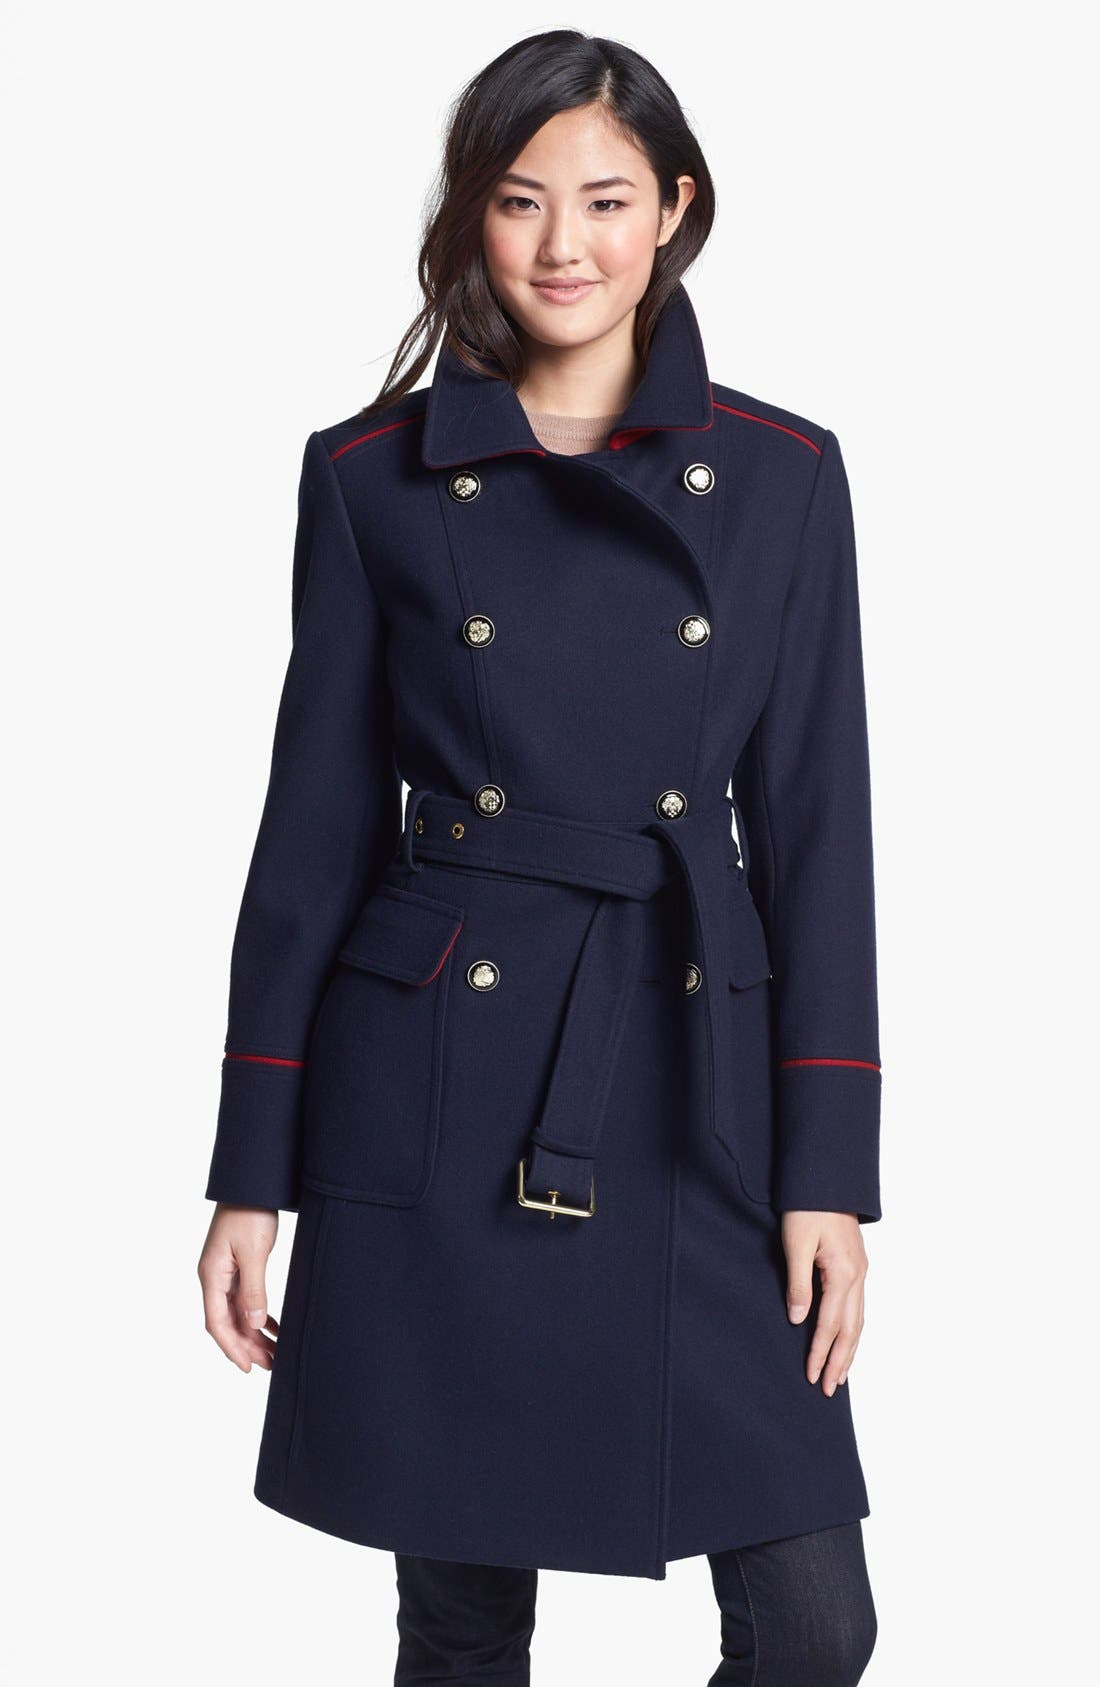 Alternate Image 1 Selected - Vince Camuto Contrast Piping Belted Military Coat